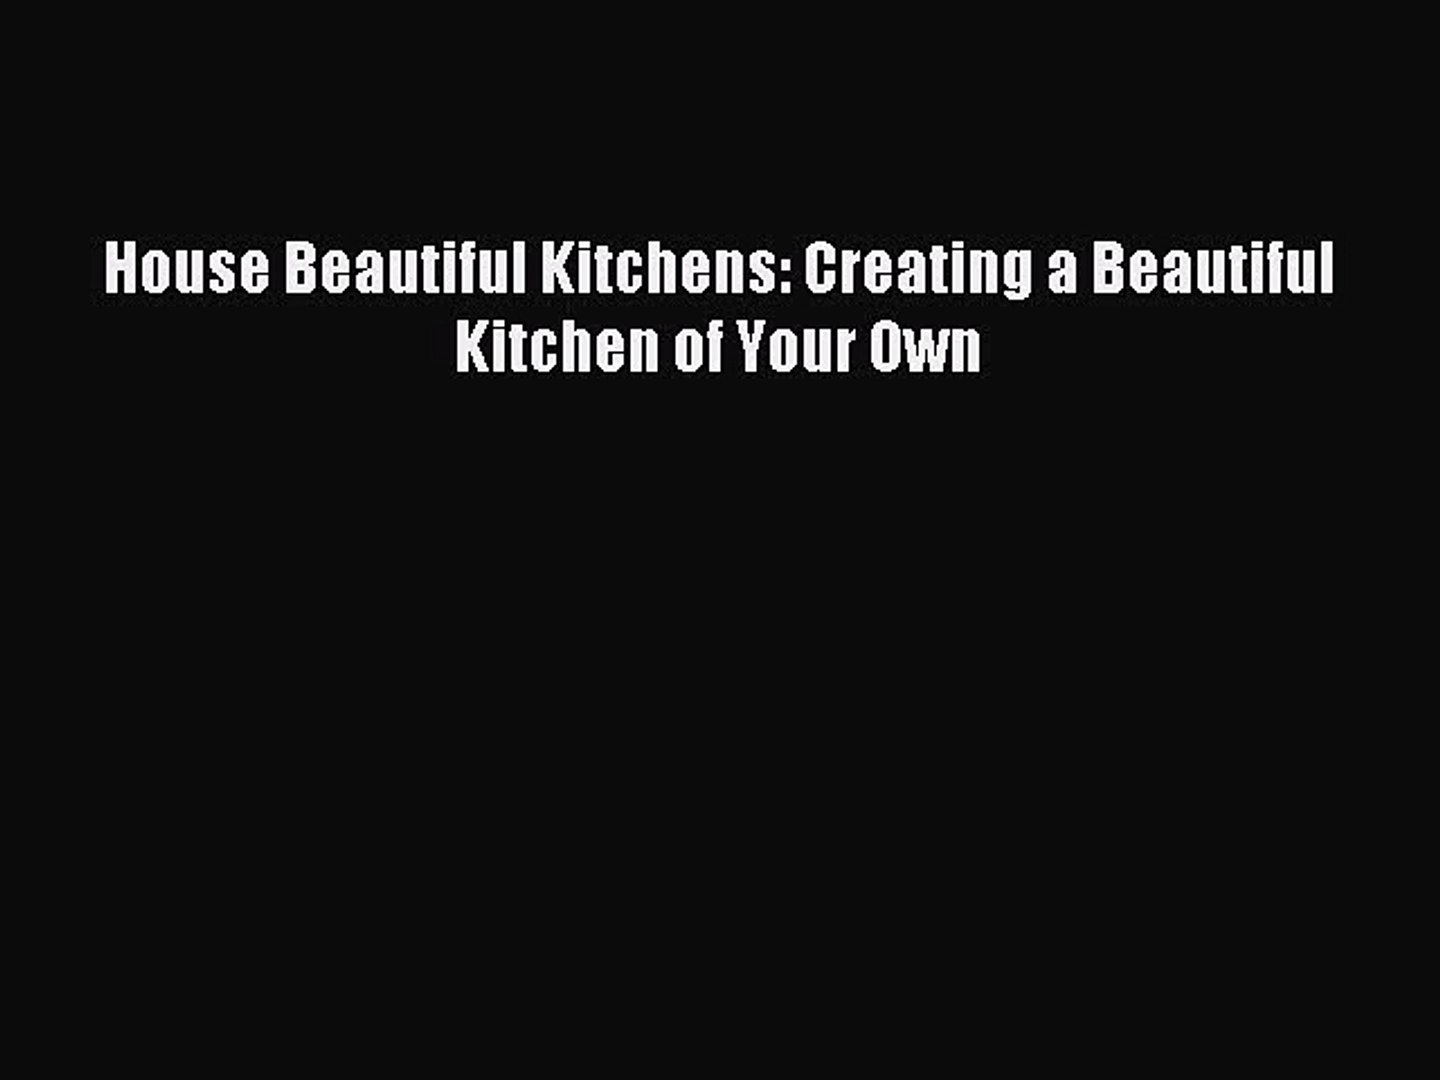 Download House Beautiful Kitchens: Creating a Beautiful Kitchen of Your Own PDF Free